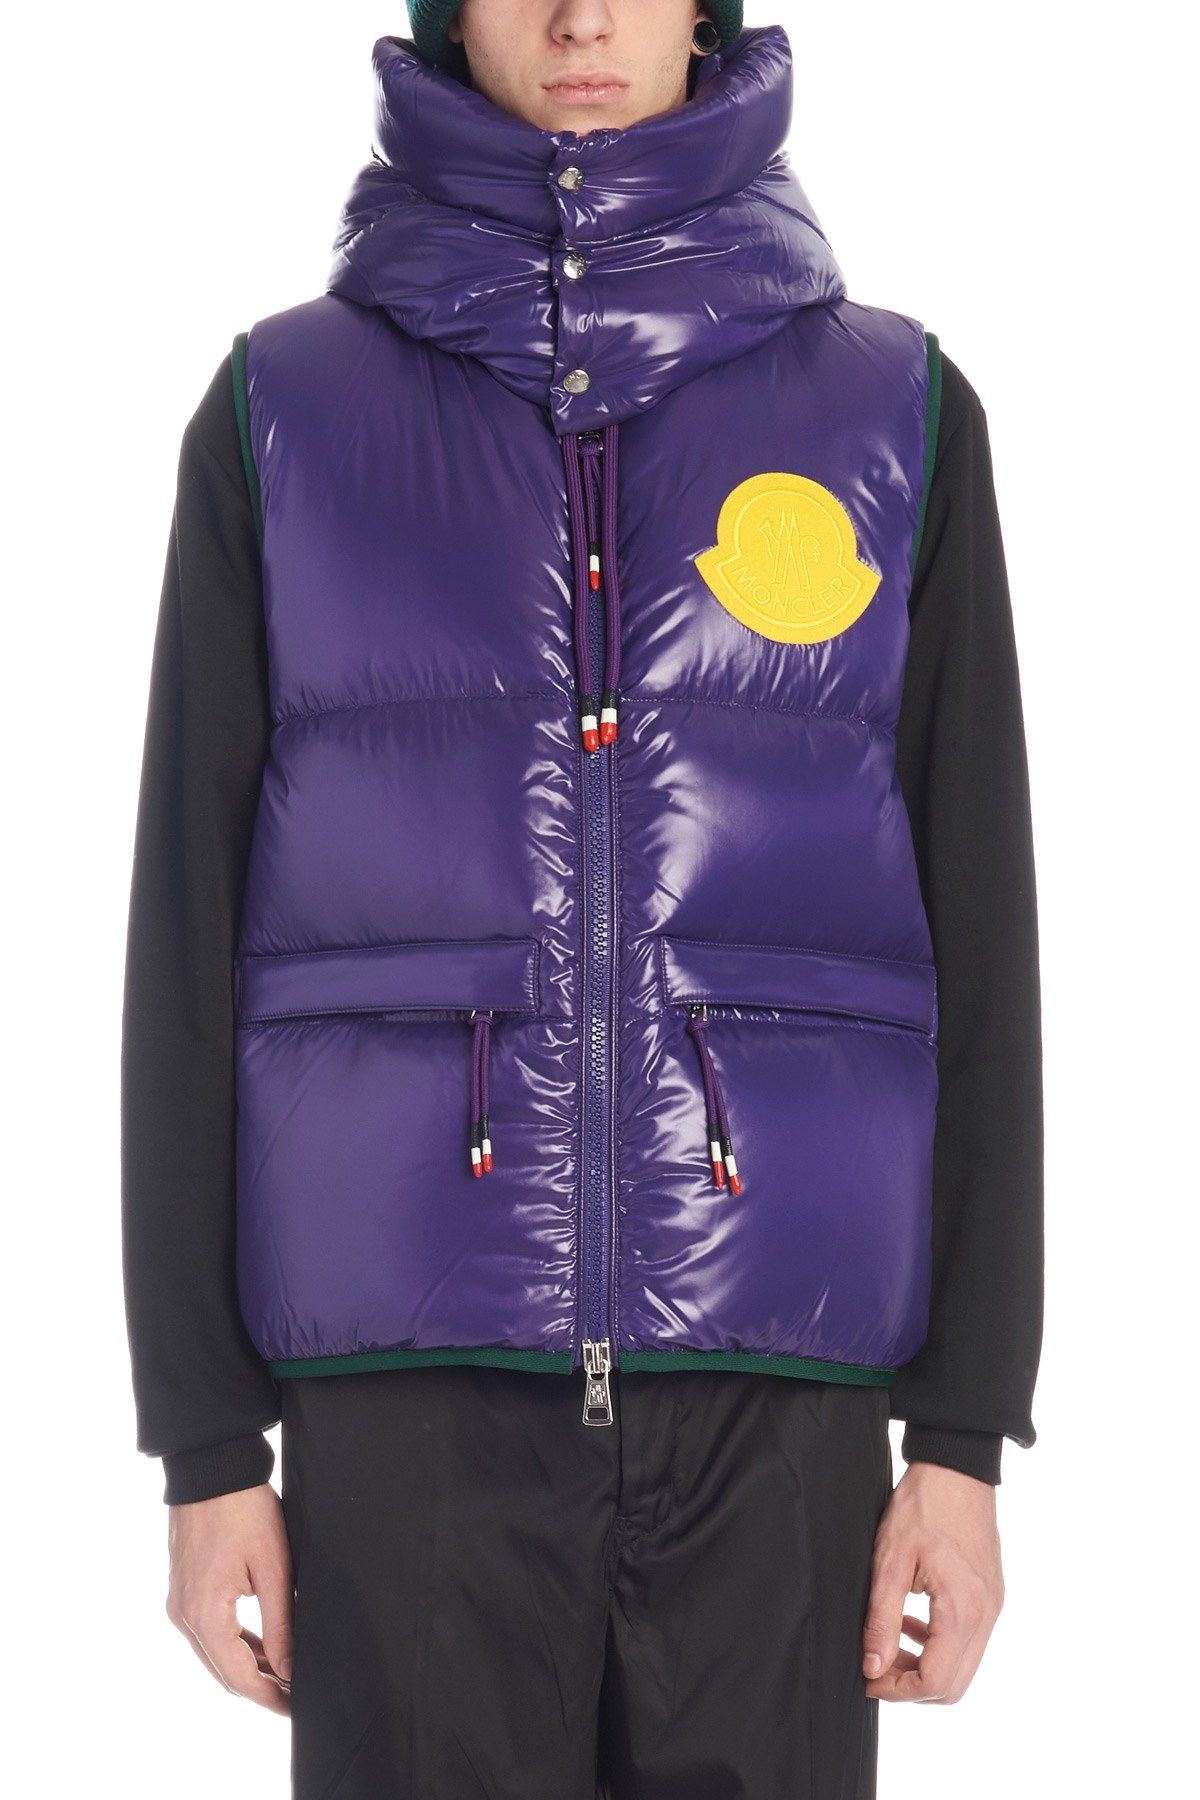 MONCLER 亮面无袖羽绒服. moncler cloth Ski trip, Winter